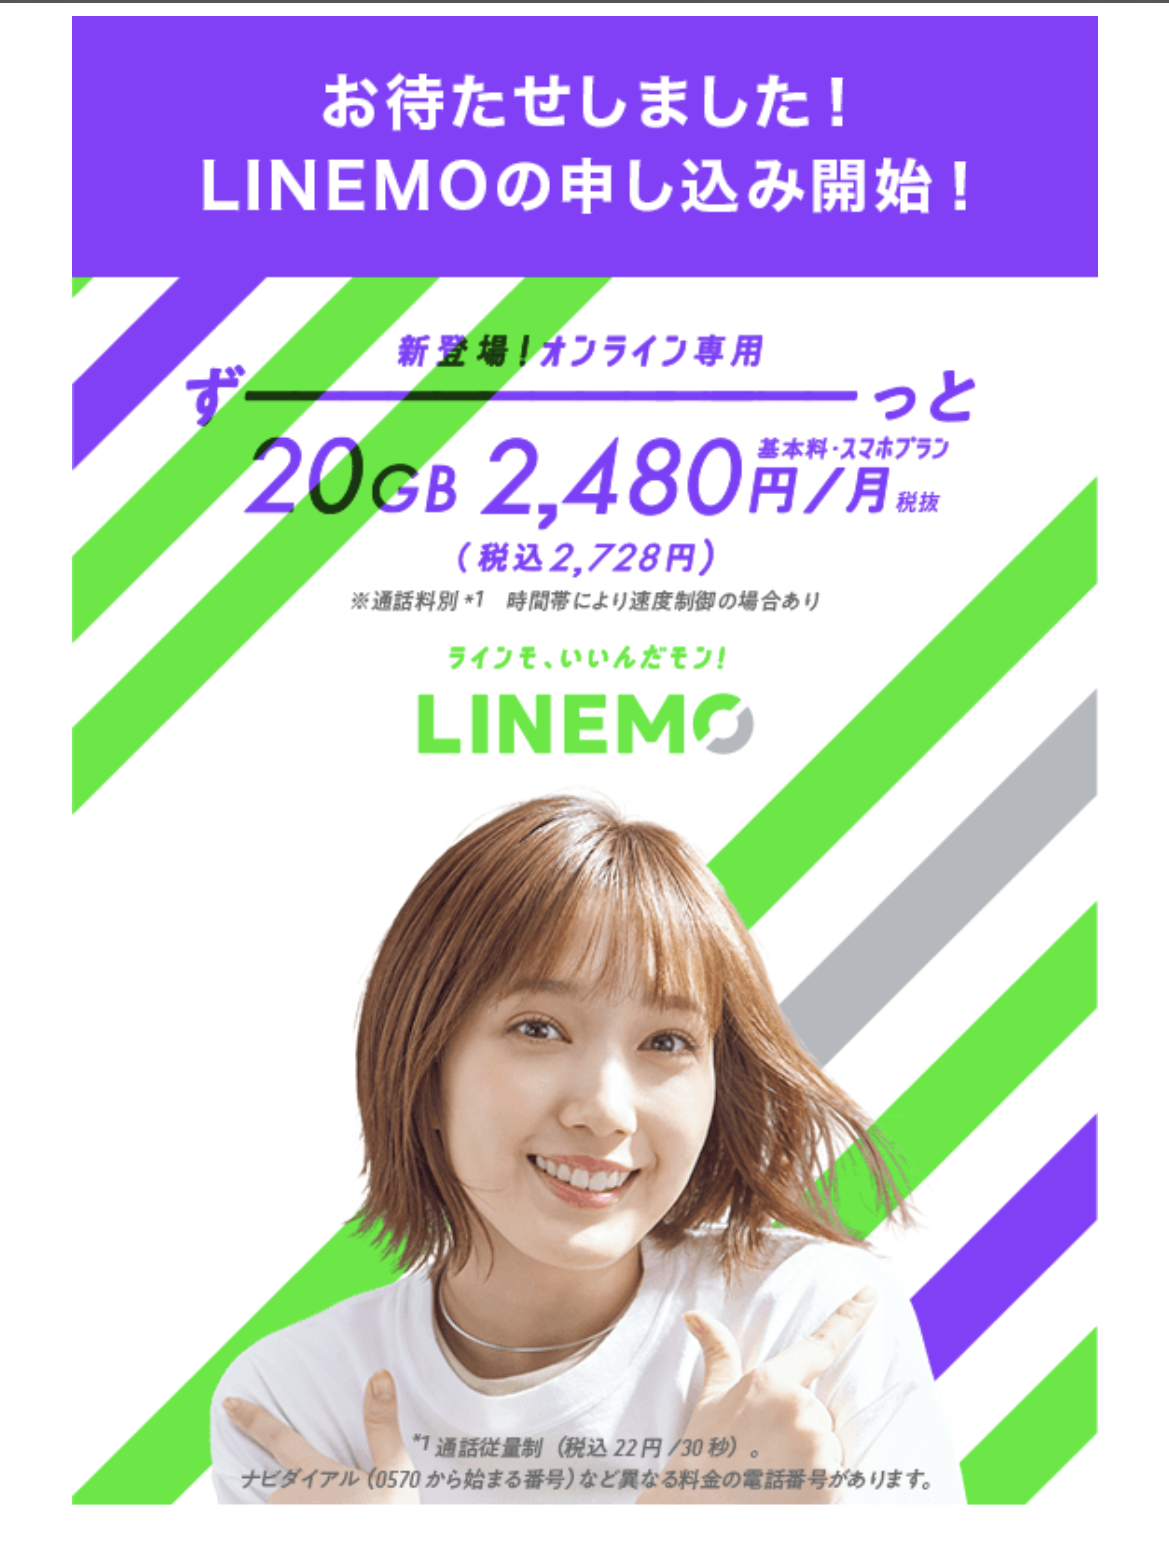 linemo1